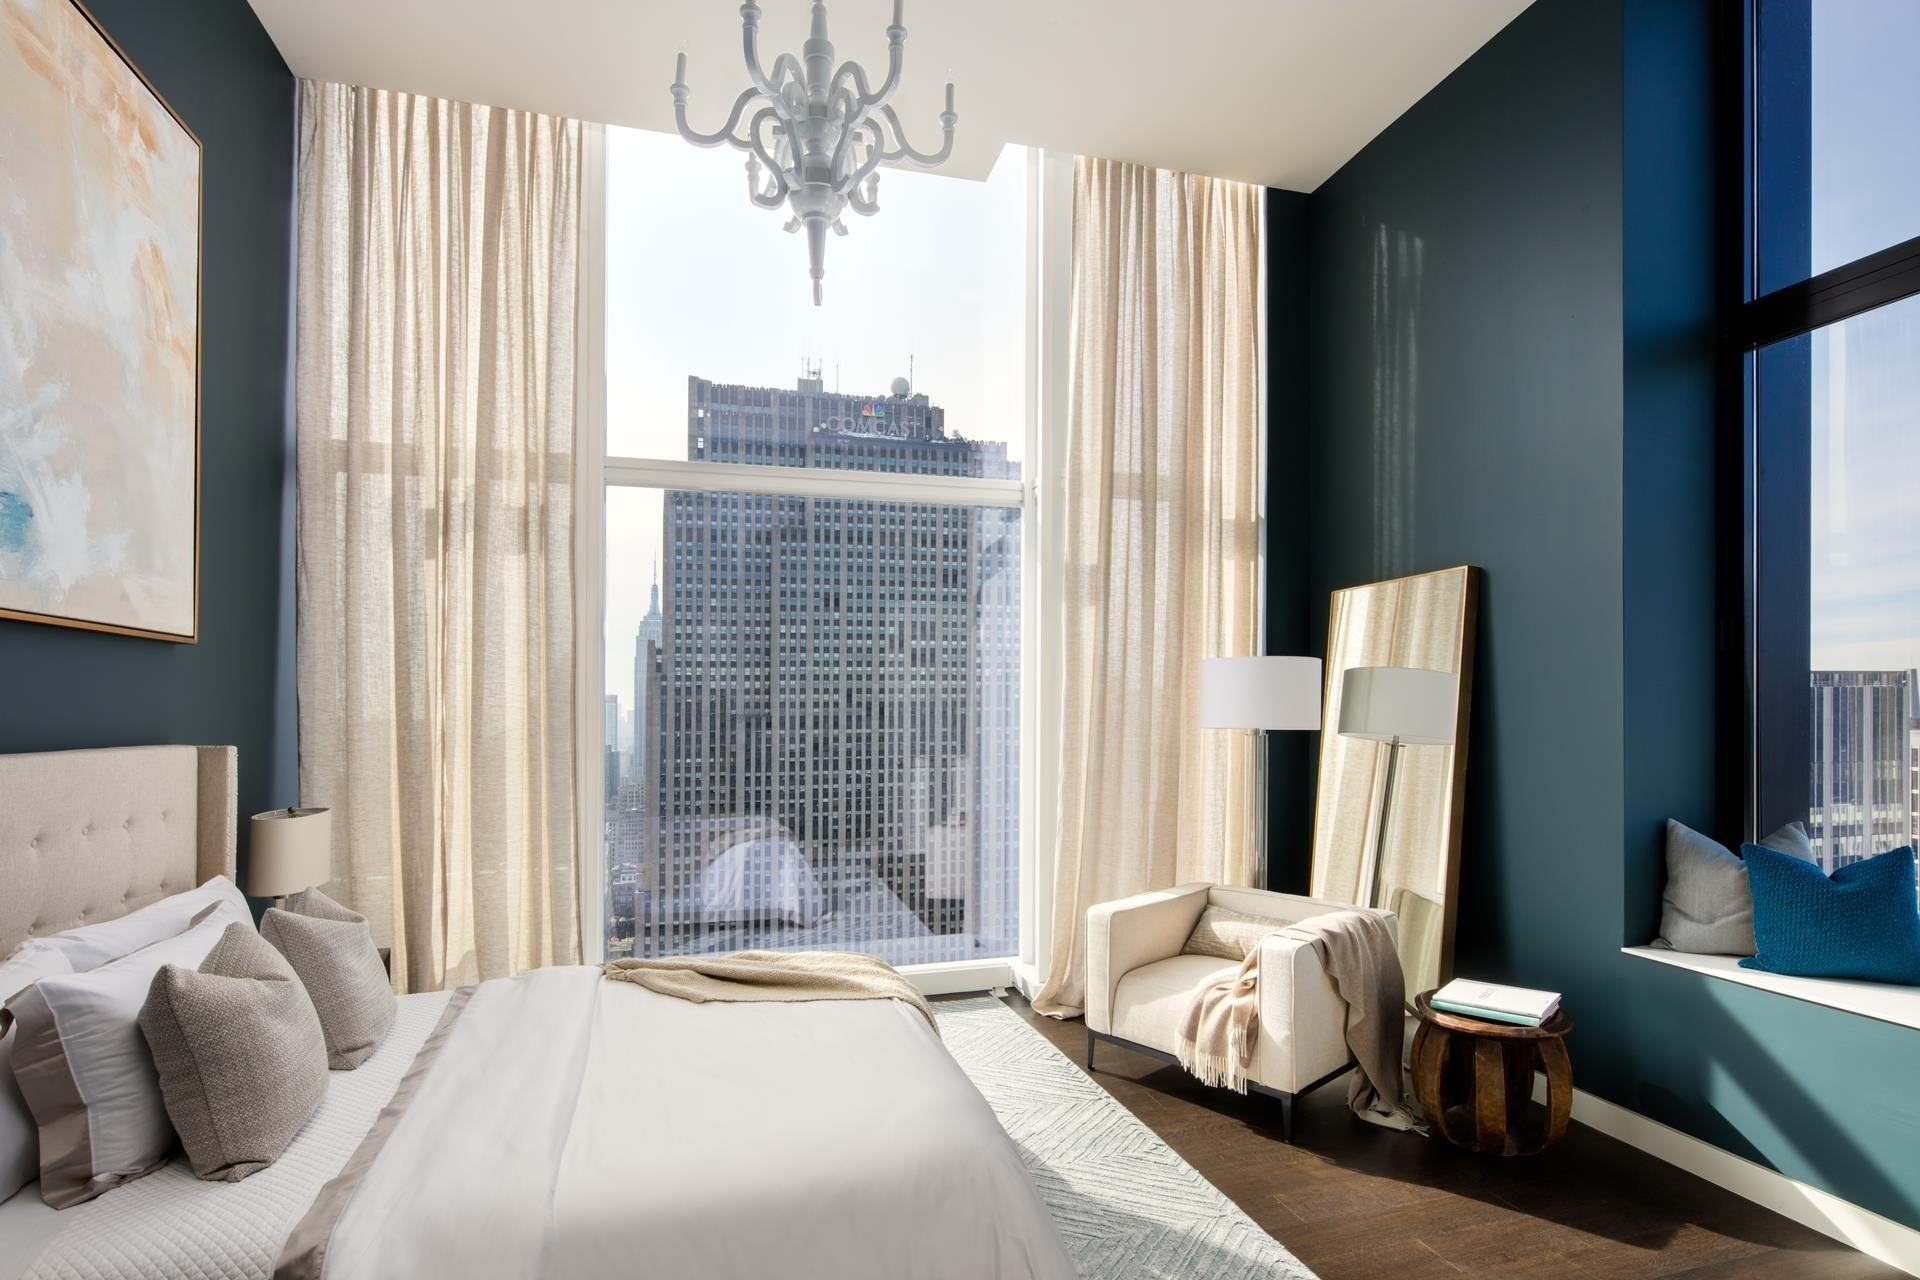 10. Condominiums for Sale at BACCARAT HOTEL & RESIDENCES, 20 West 53rd St, PH48/49 Midtown West, New York, NY 10019